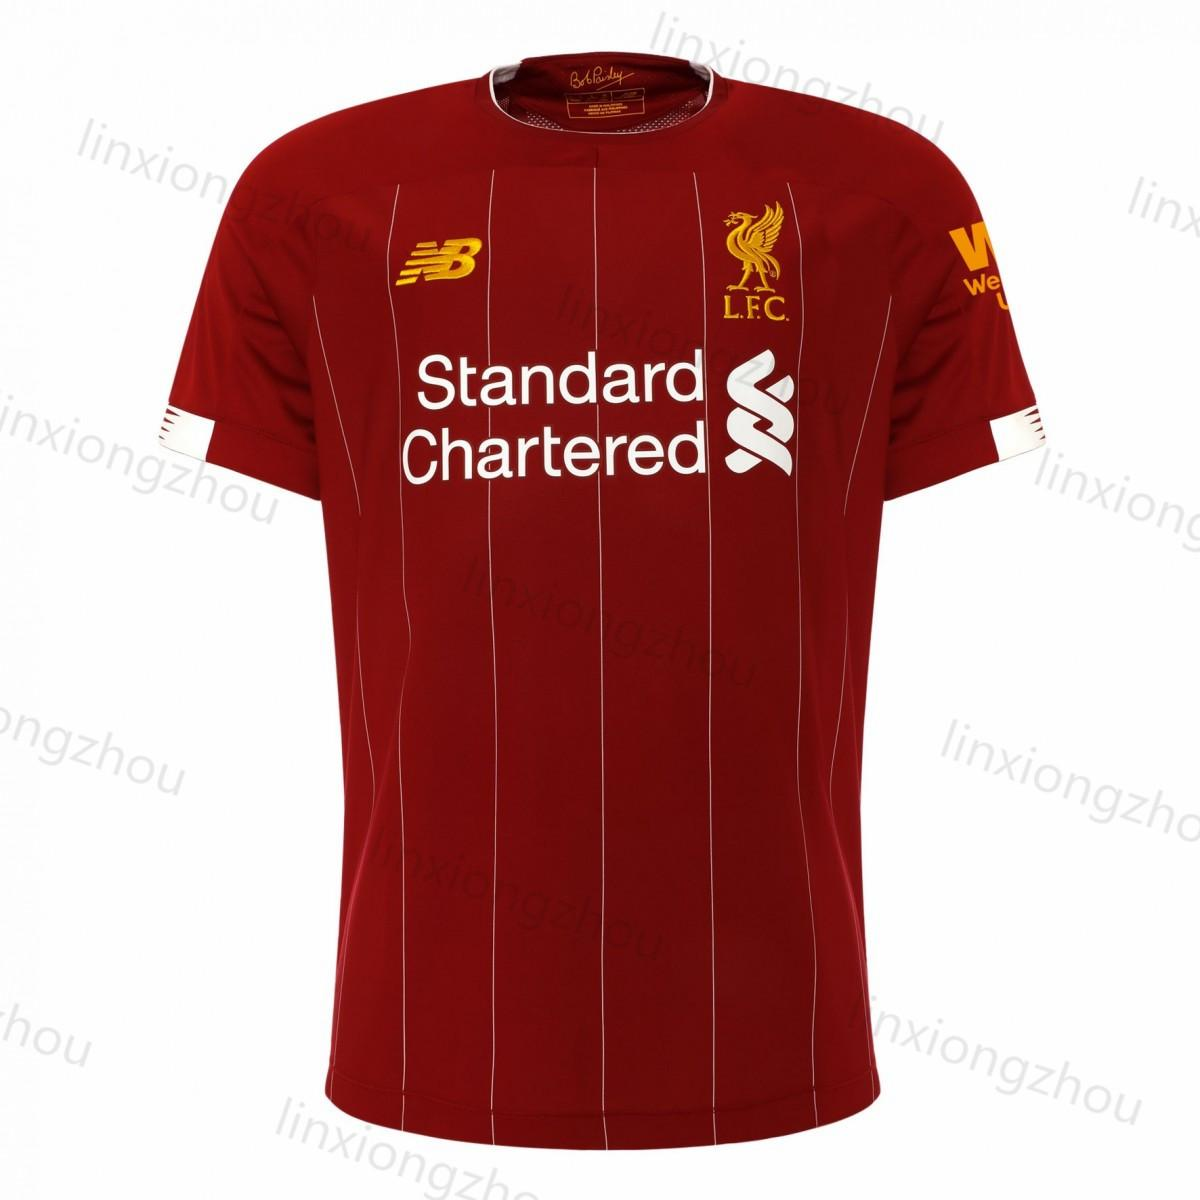 e5f2fdab18a33 NEW Balance Highest quality 1920 Liverpool LFC football Jersey grade AAA